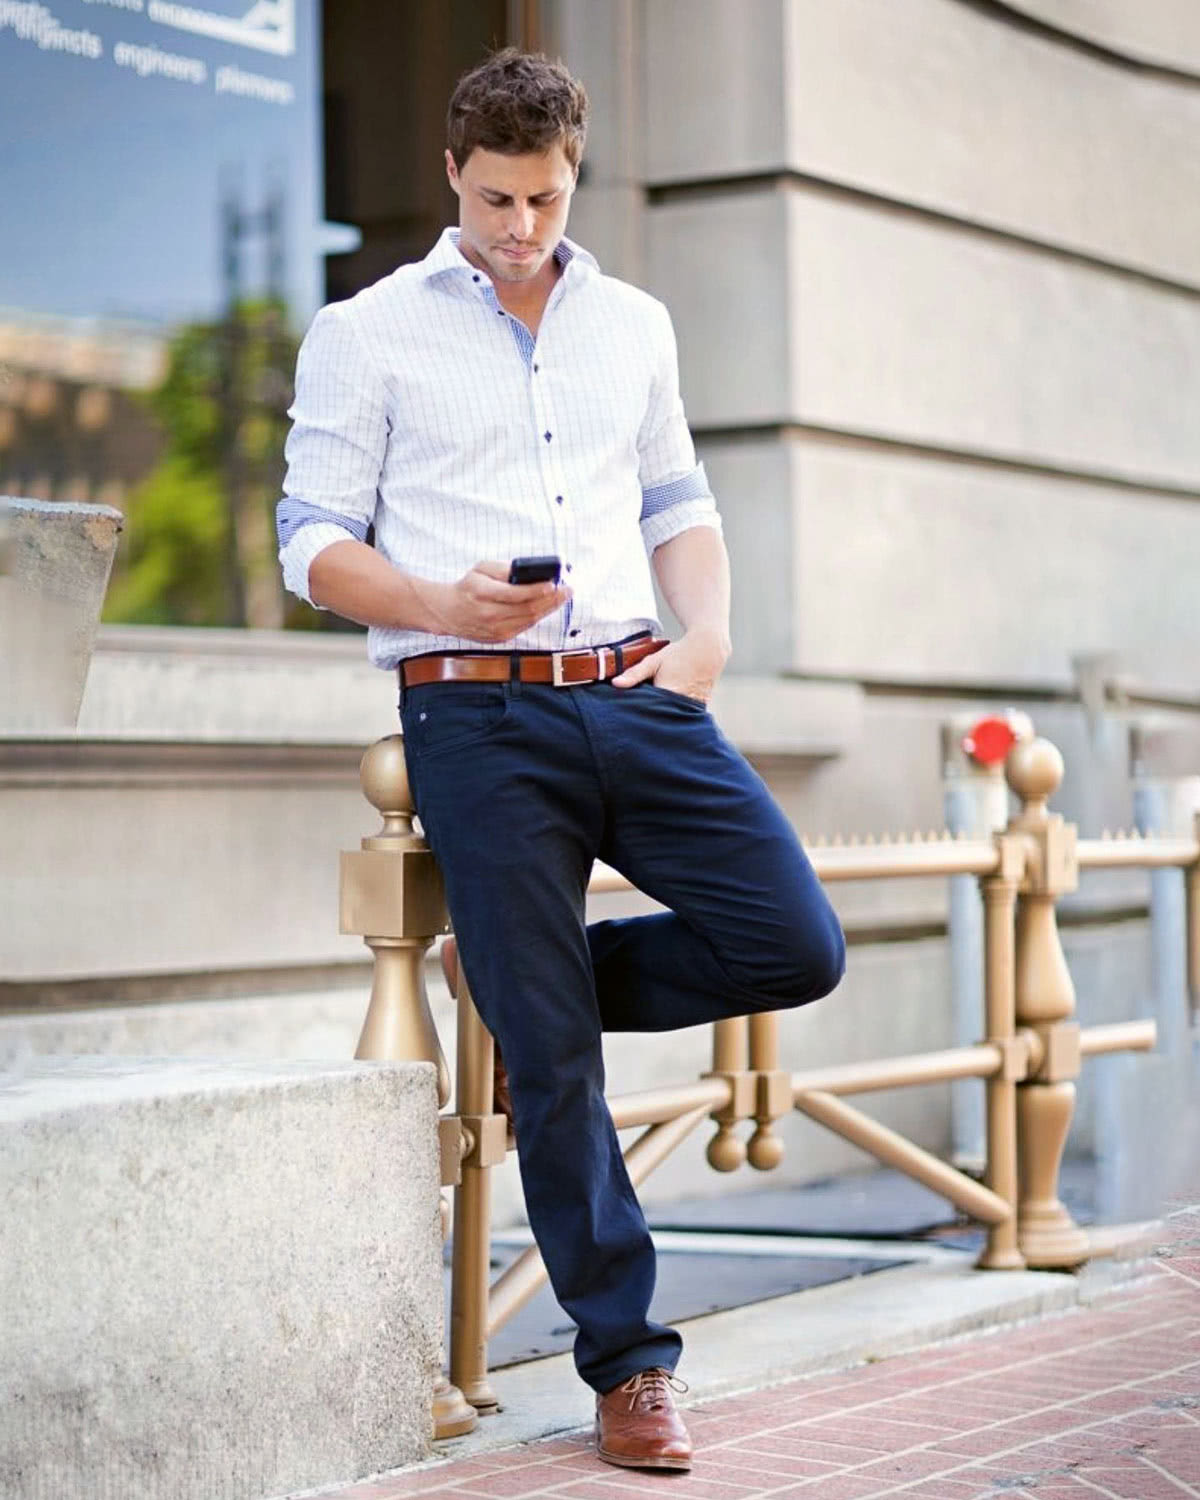 smart casual dress code men office style - Luxe Digital